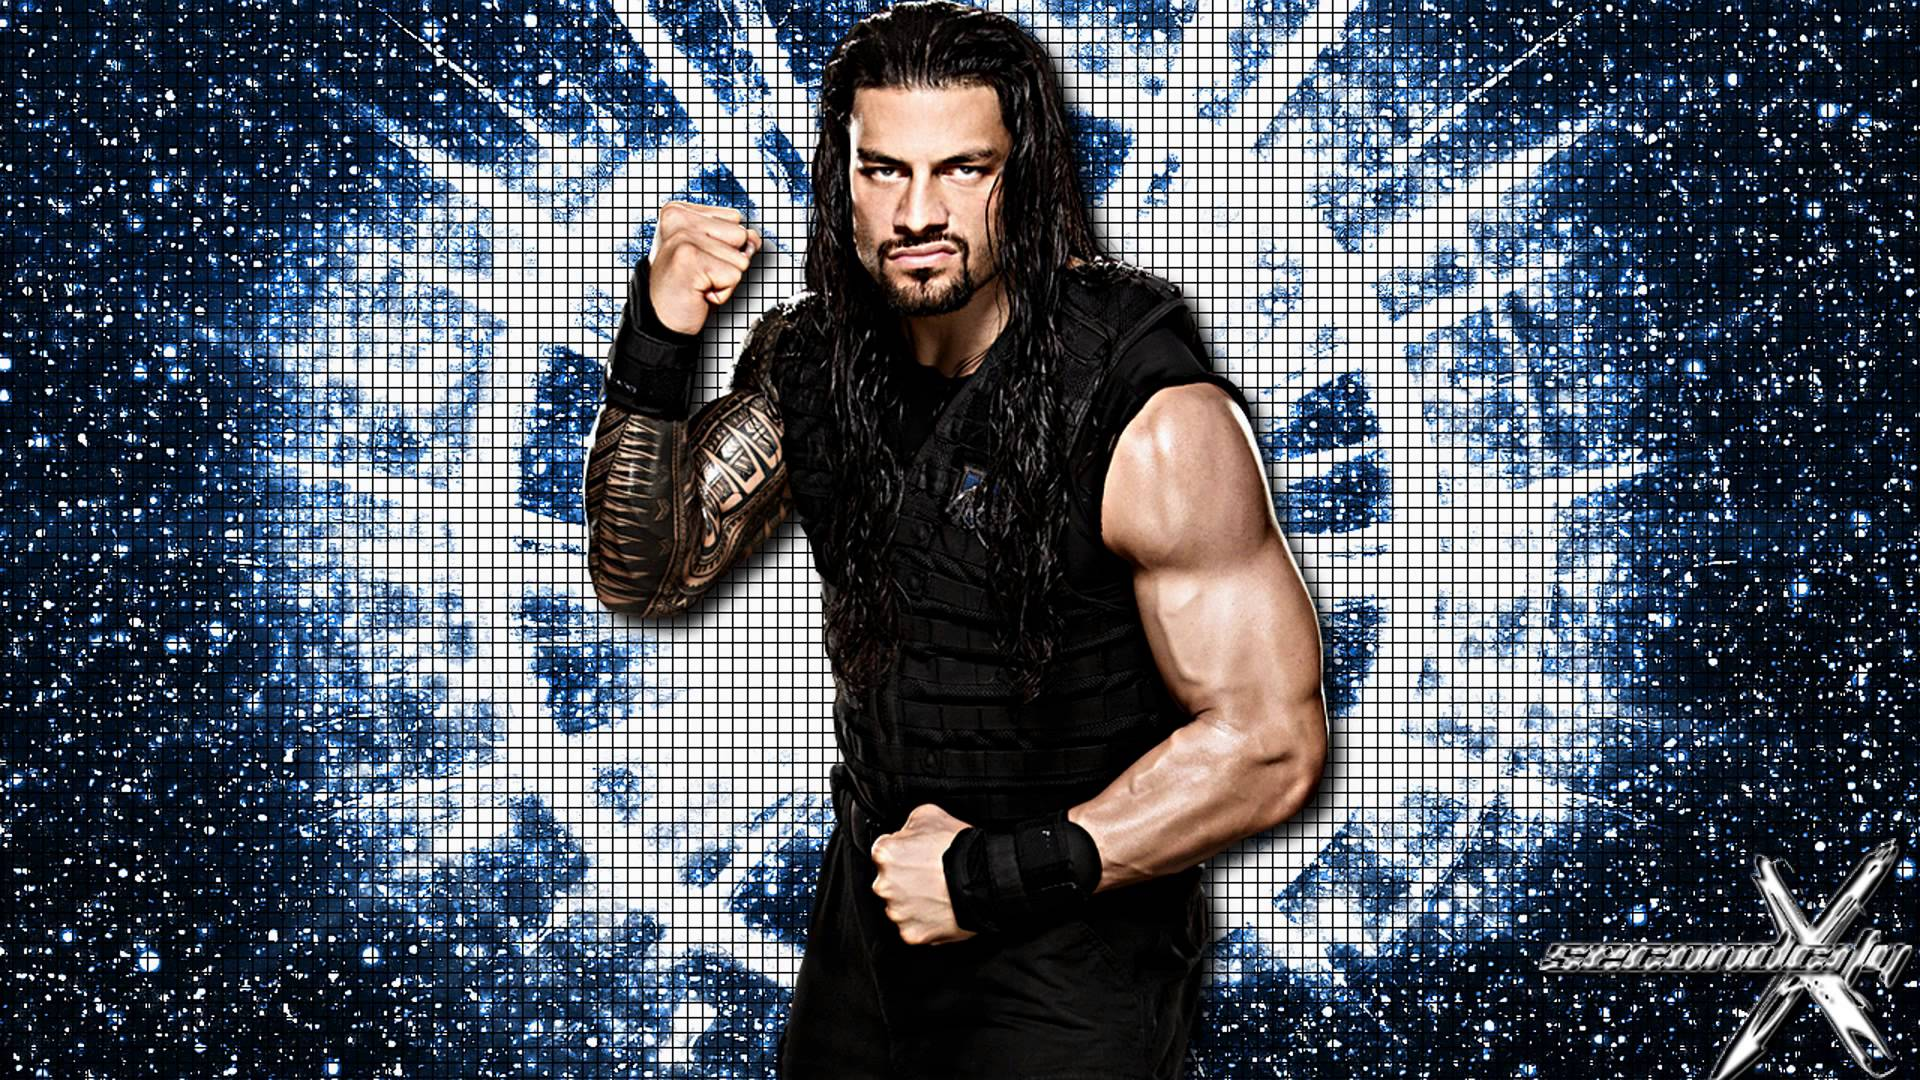 WWE Superstars 2015 Wallpapers 1920x1080